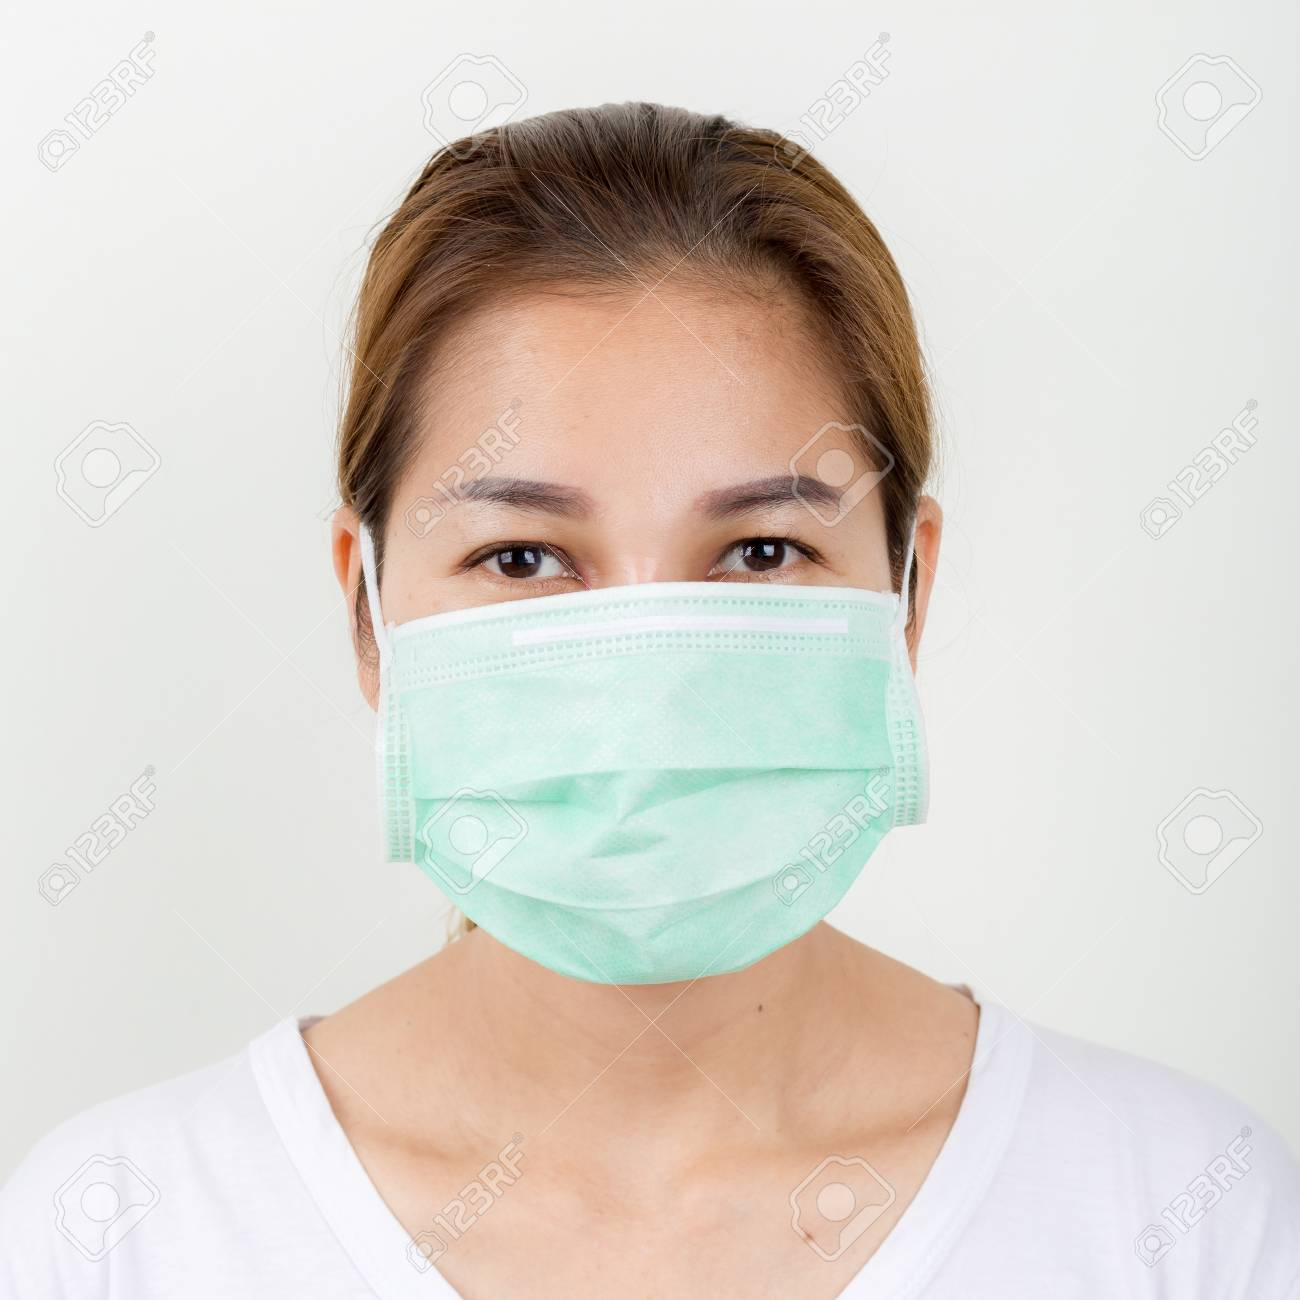 Face Asian Mask The Medical Using Closup Woman Of